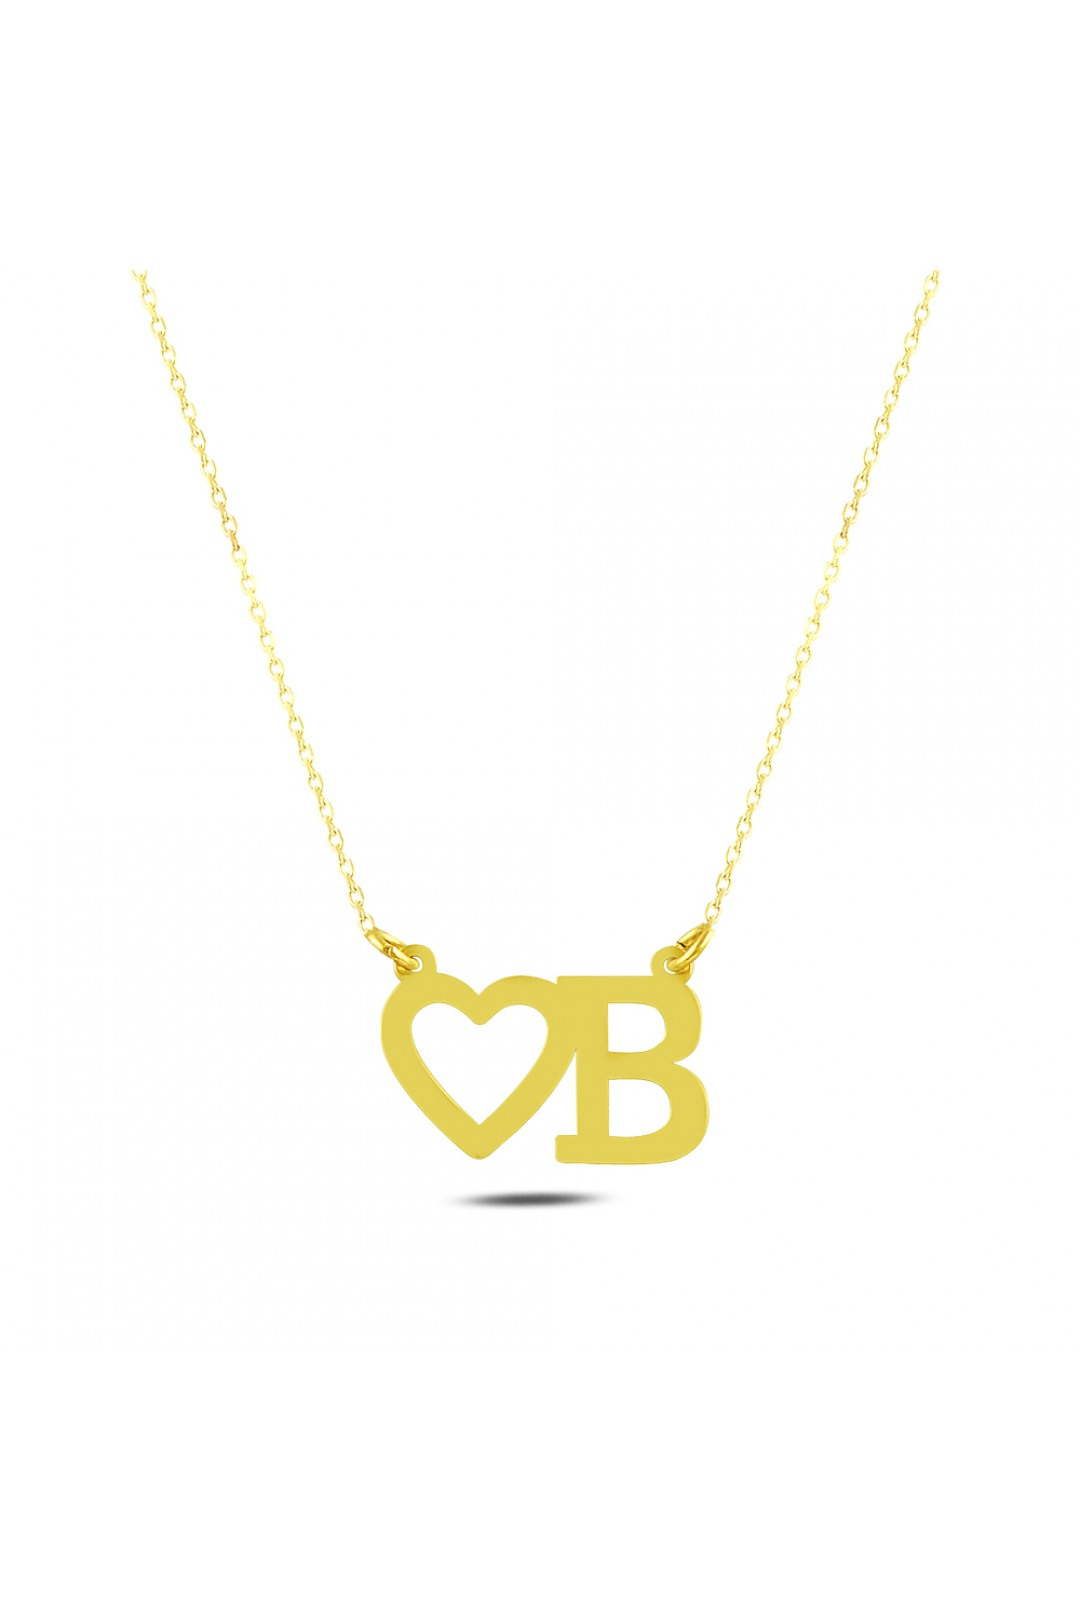 HEARTED B NECKLACE